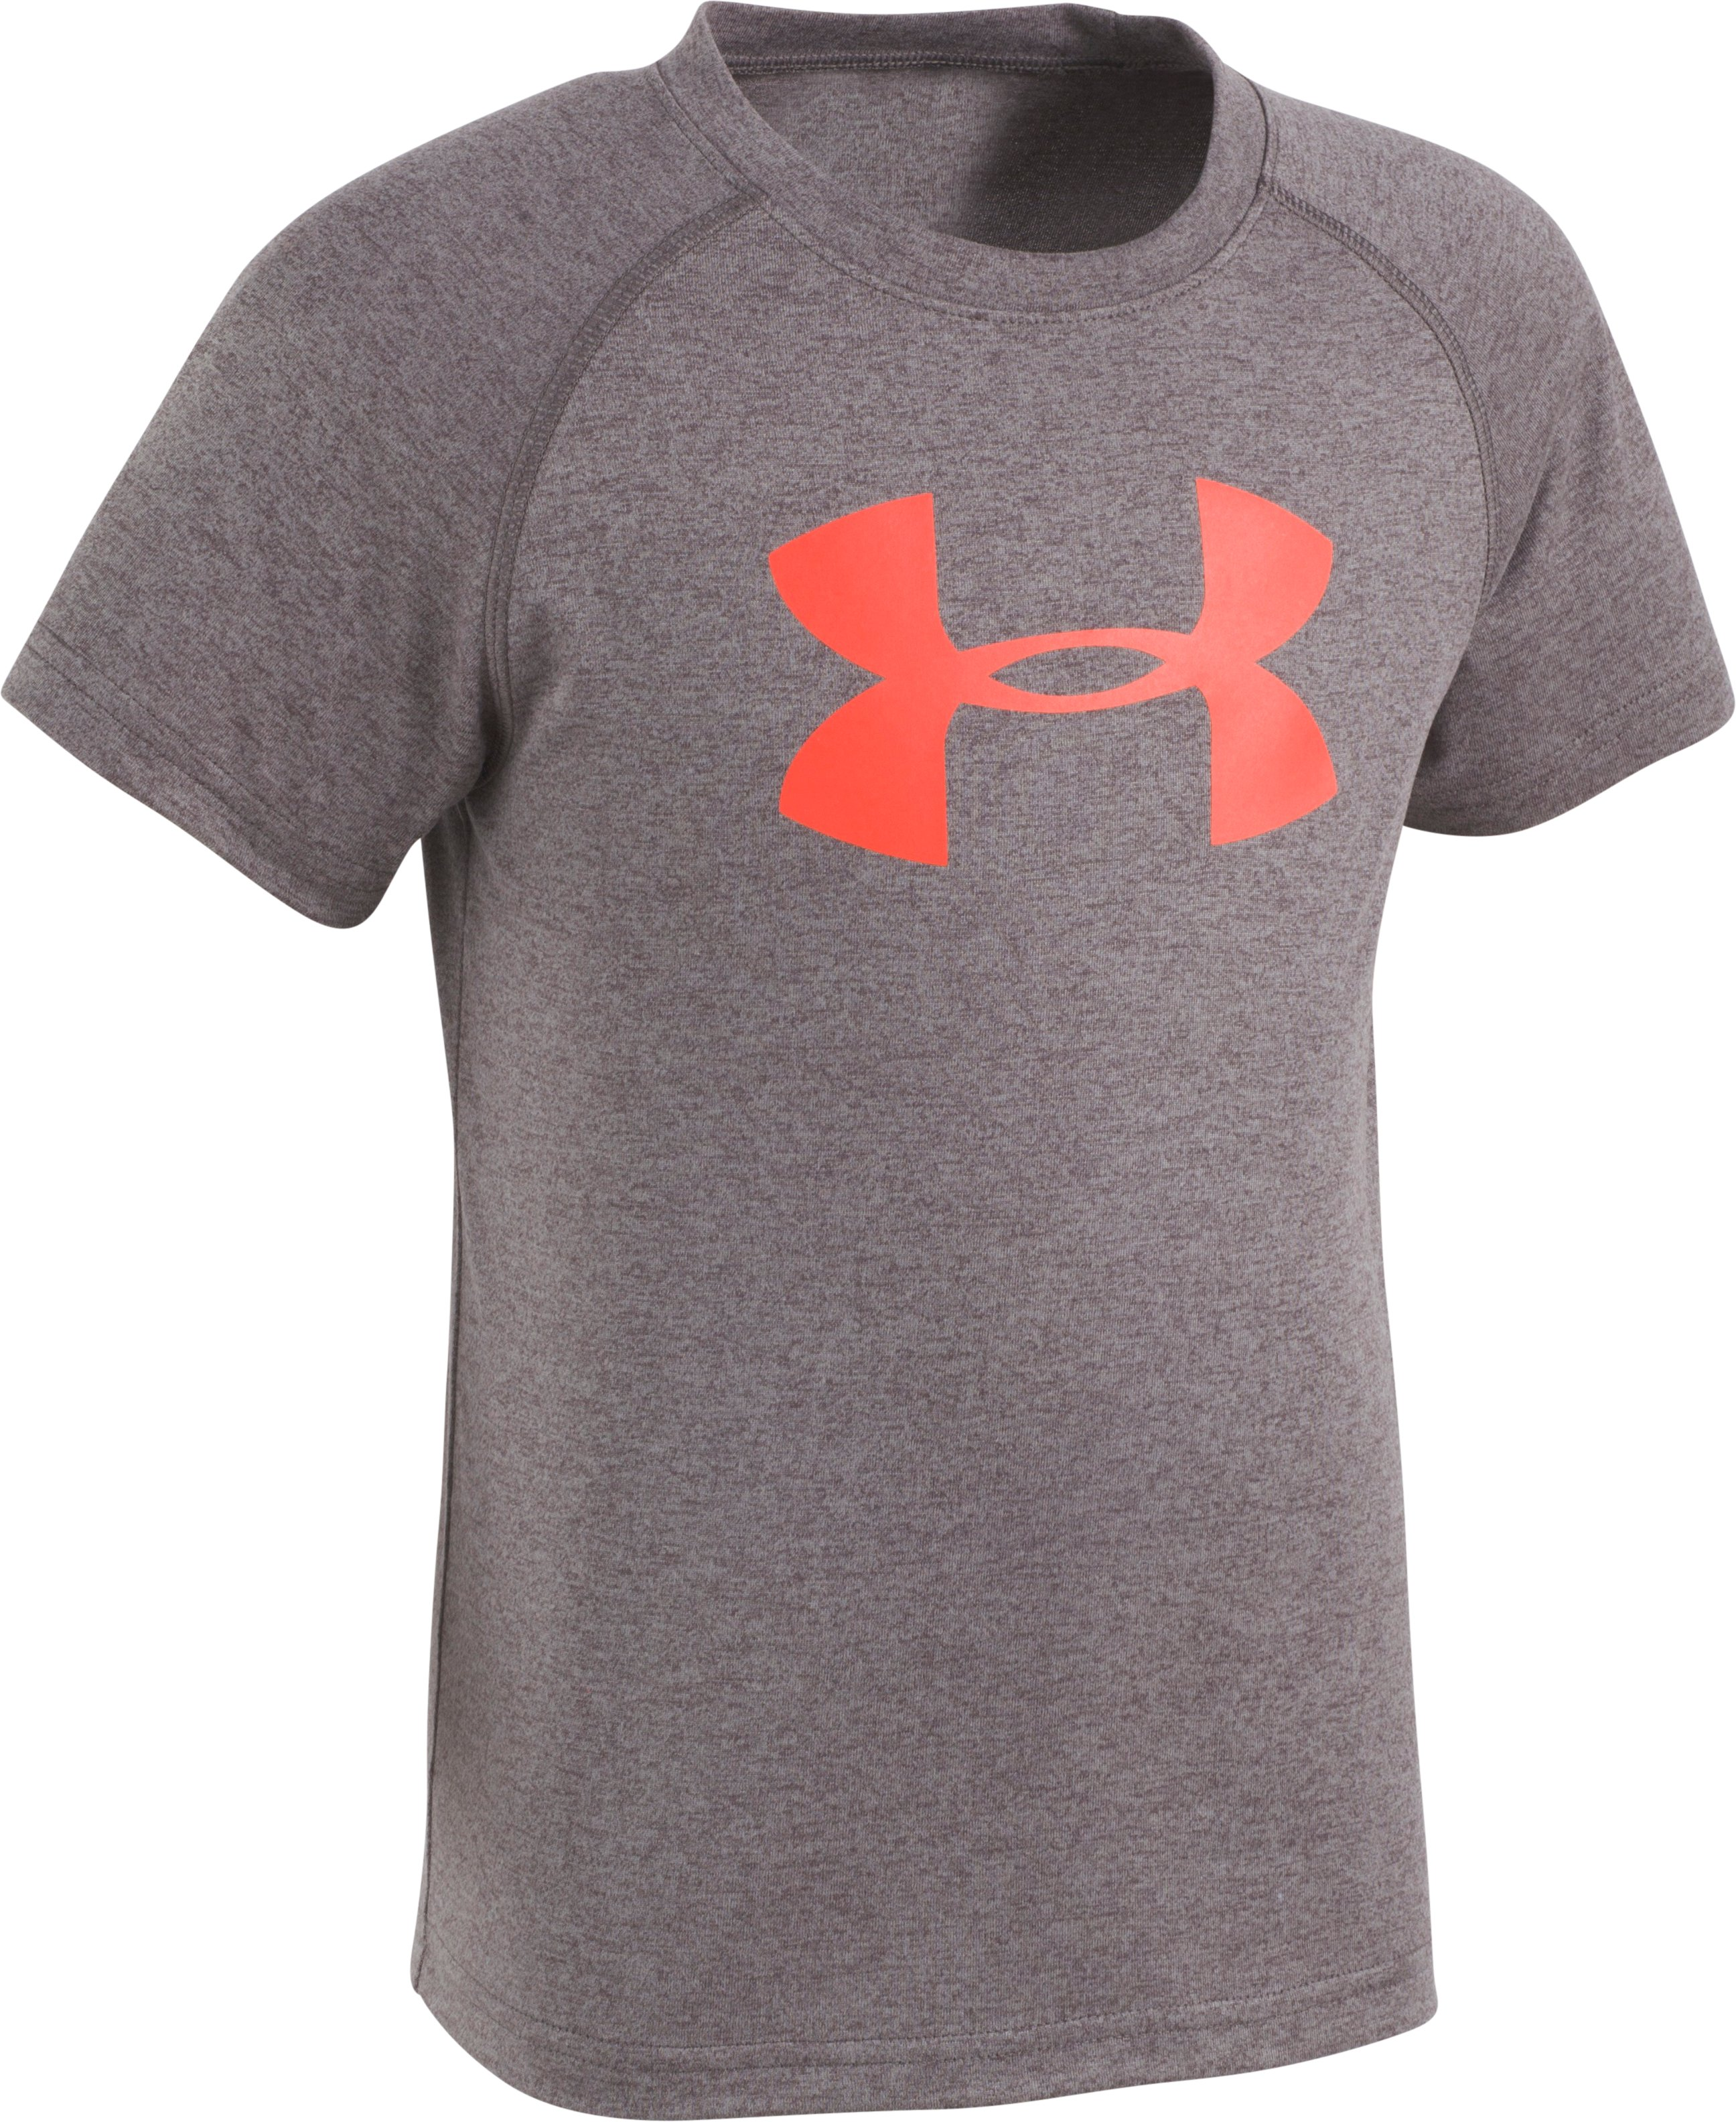 Boys' Pre-School UA Big Logo T-Shirt, Carbon Heather, Laydown